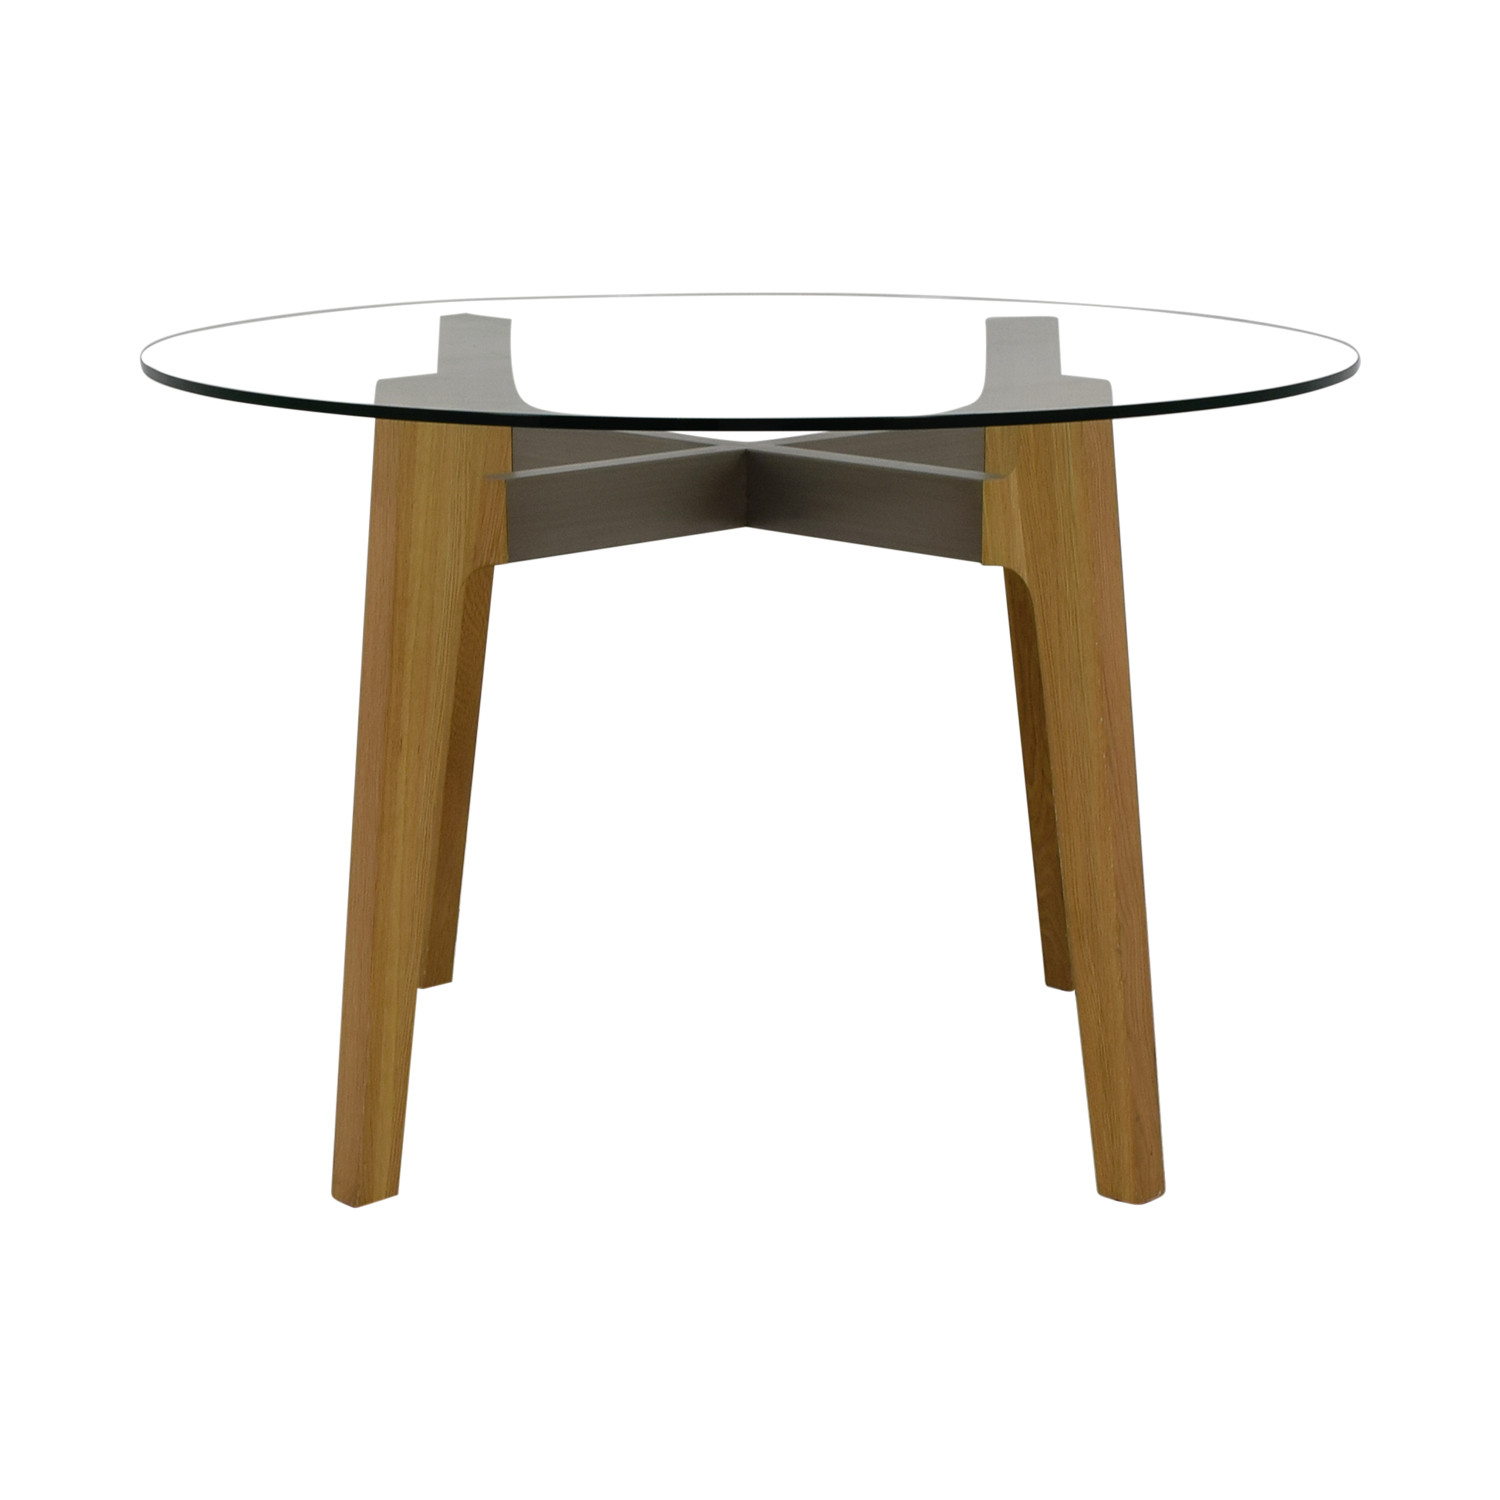 Best ideas about Cb2 Dining Table . Save or Pin Shop cb2 Used furniture on sale Now.